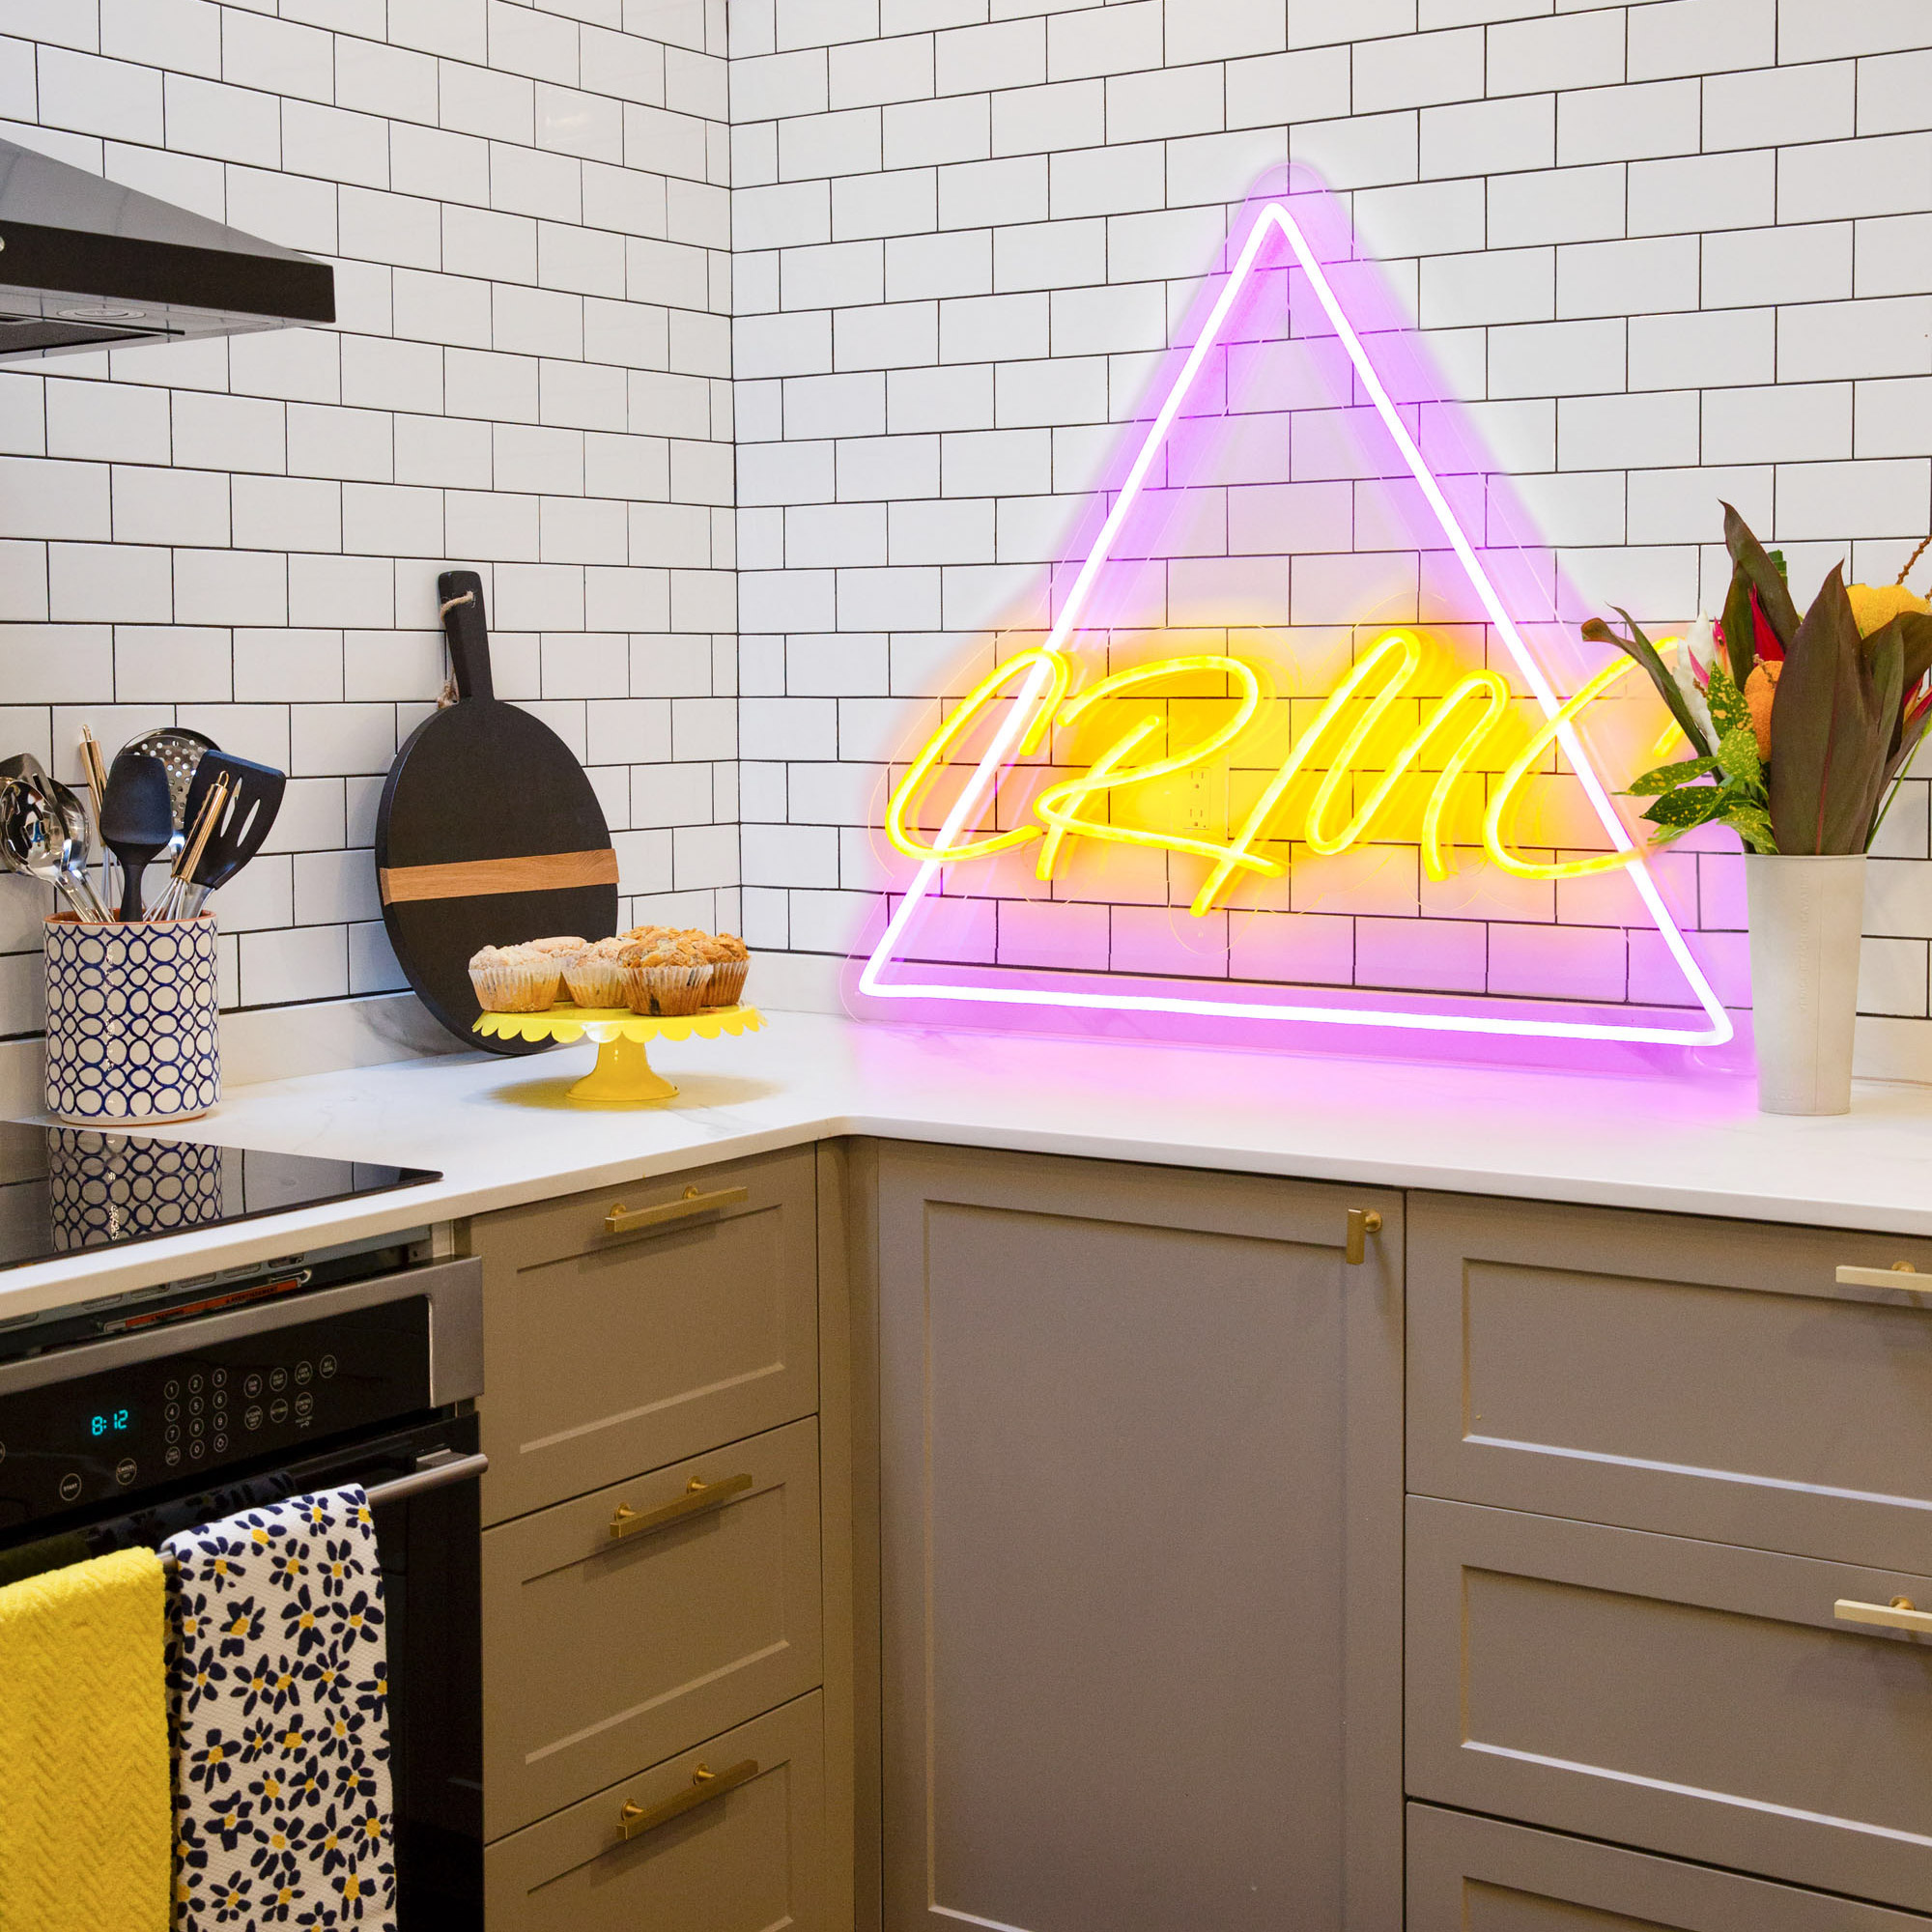 kitchen with triangle neon sign